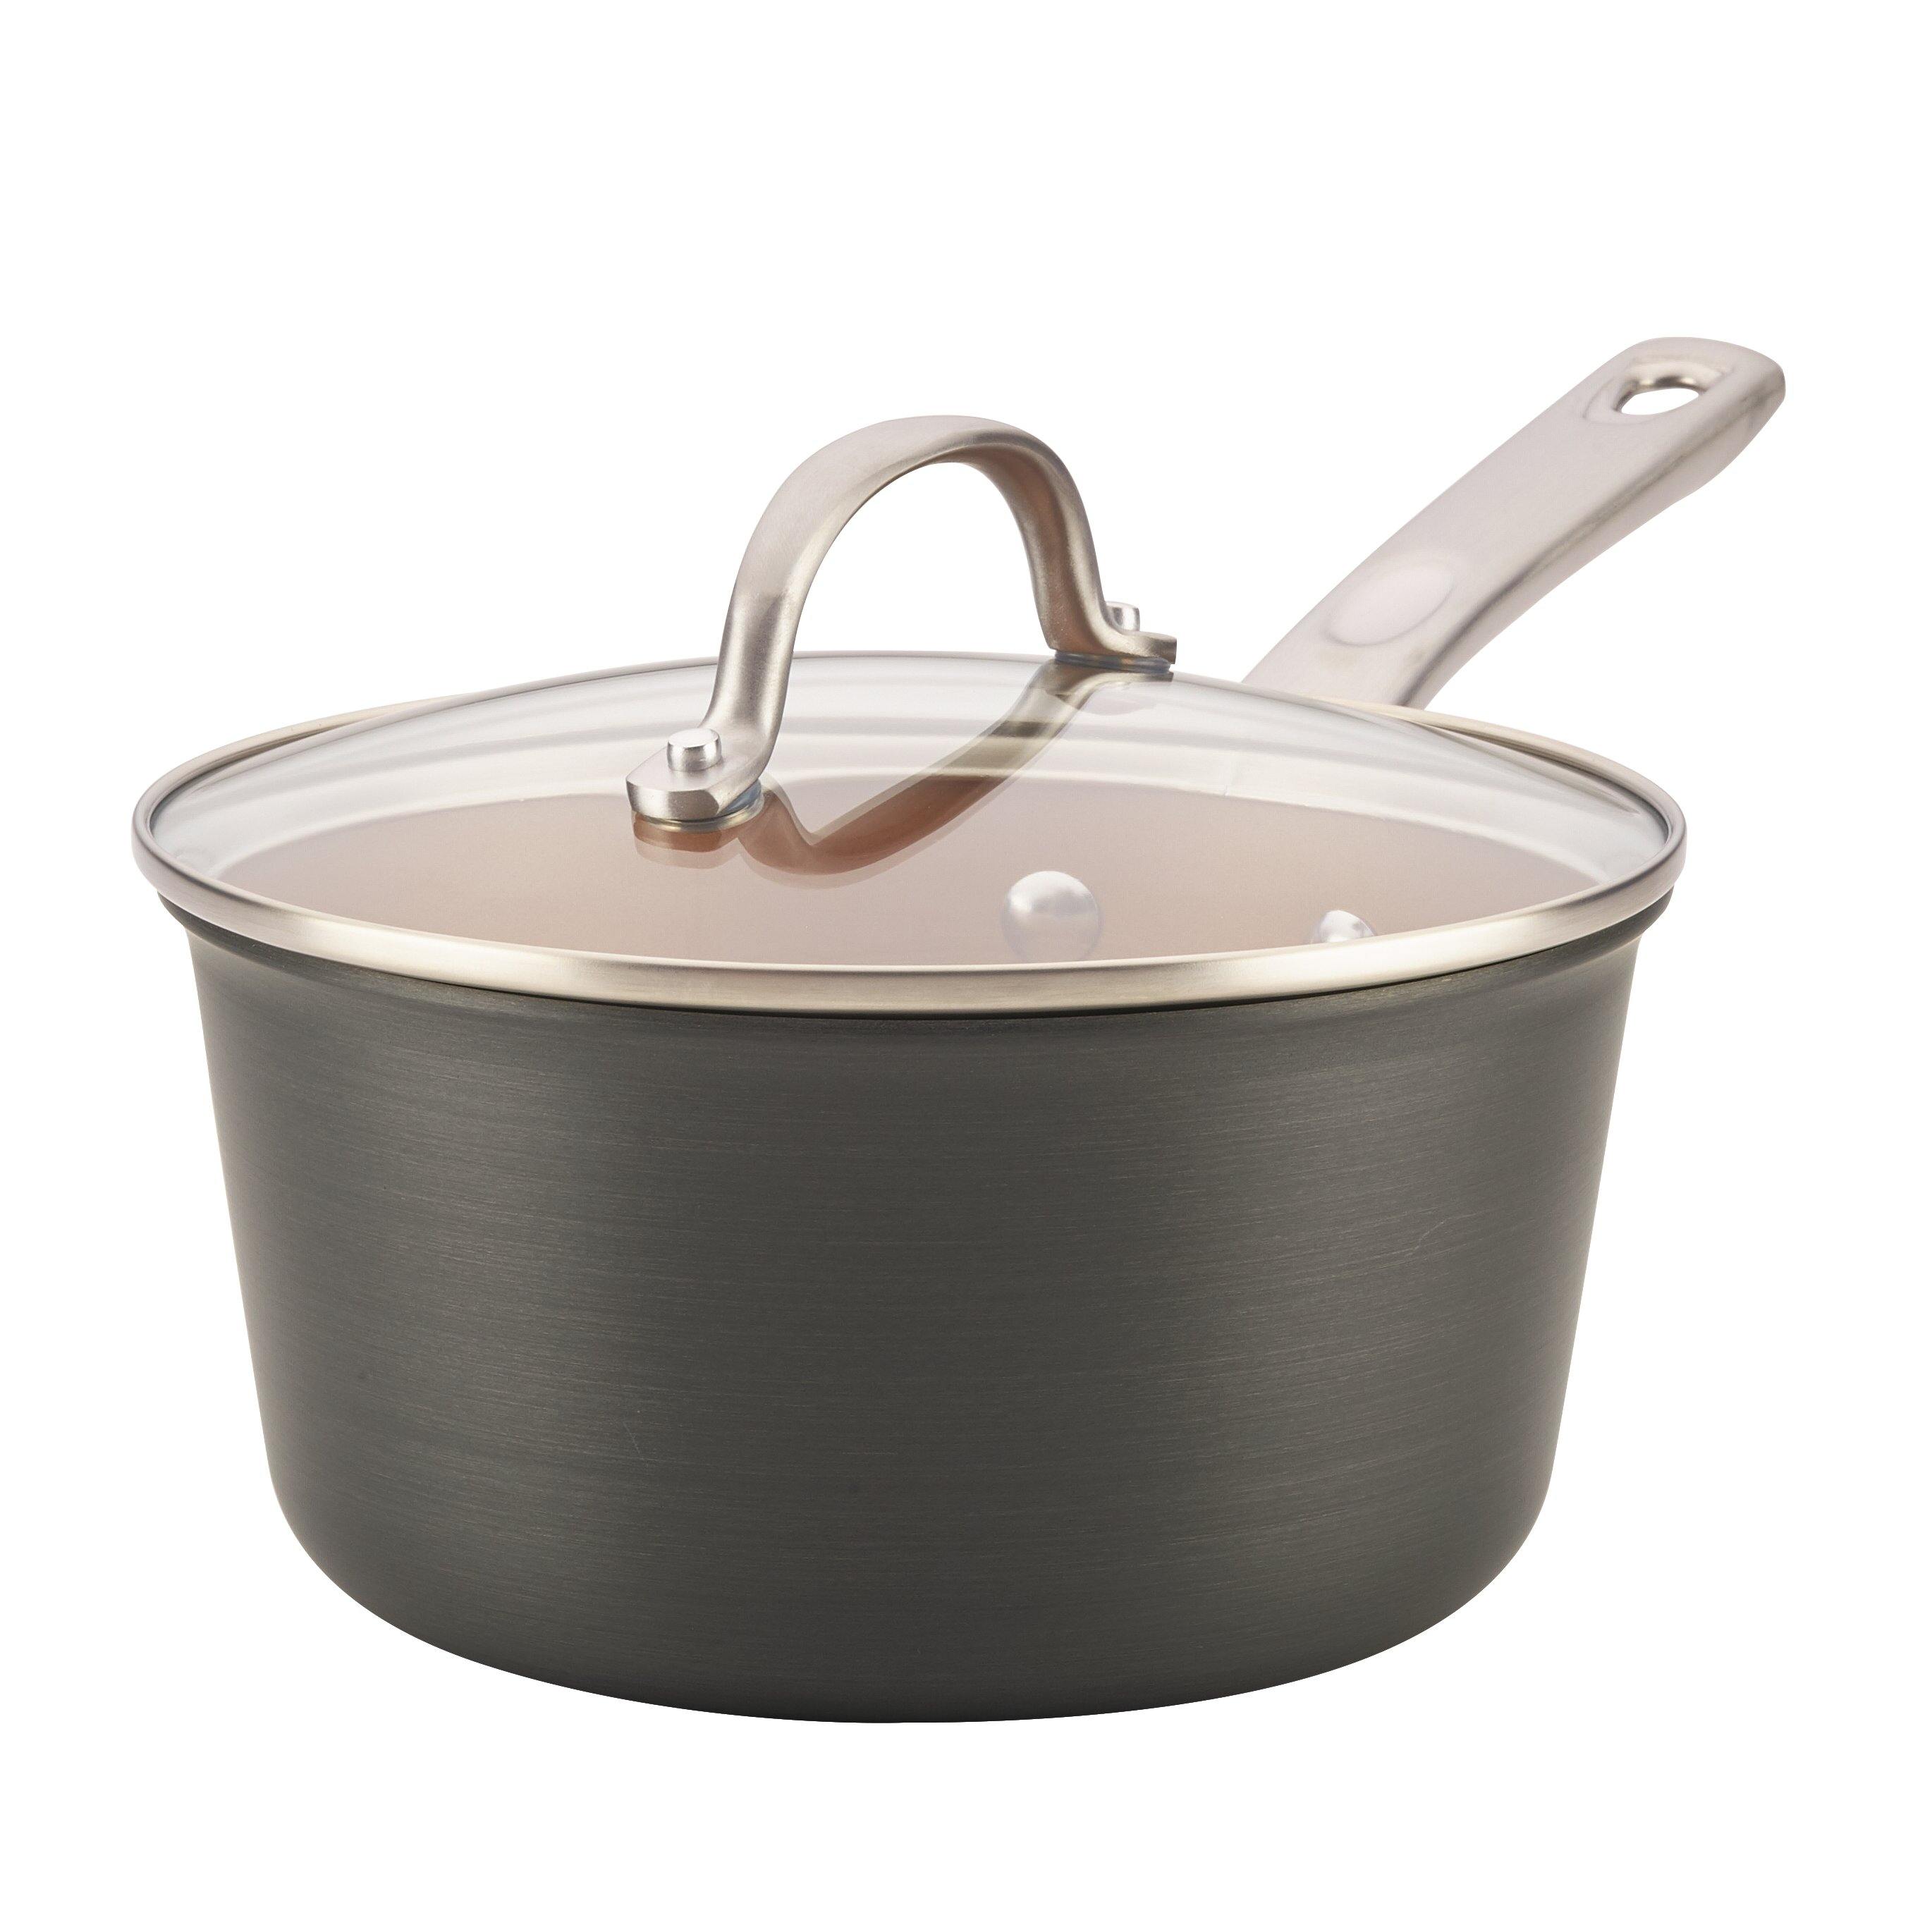 Ayesha Curry 3 qt  Hard Anodized Aluminum Sauce Pan with Lid